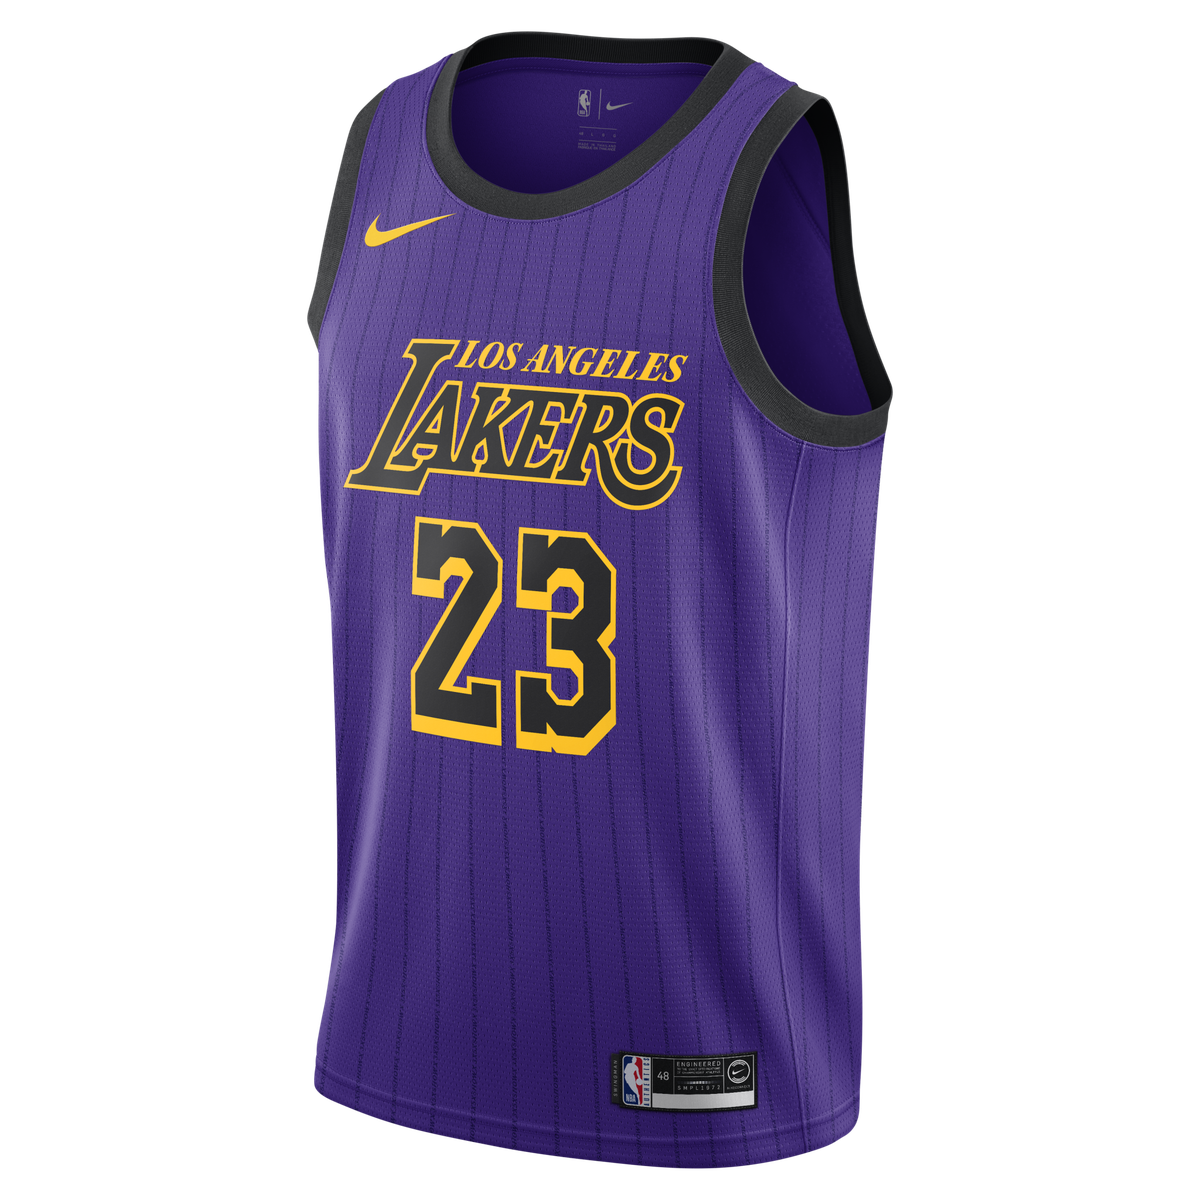 74824ea05d0b LeBron James Nike Swingman Jersey - City Edition for  109.99 Fanatics